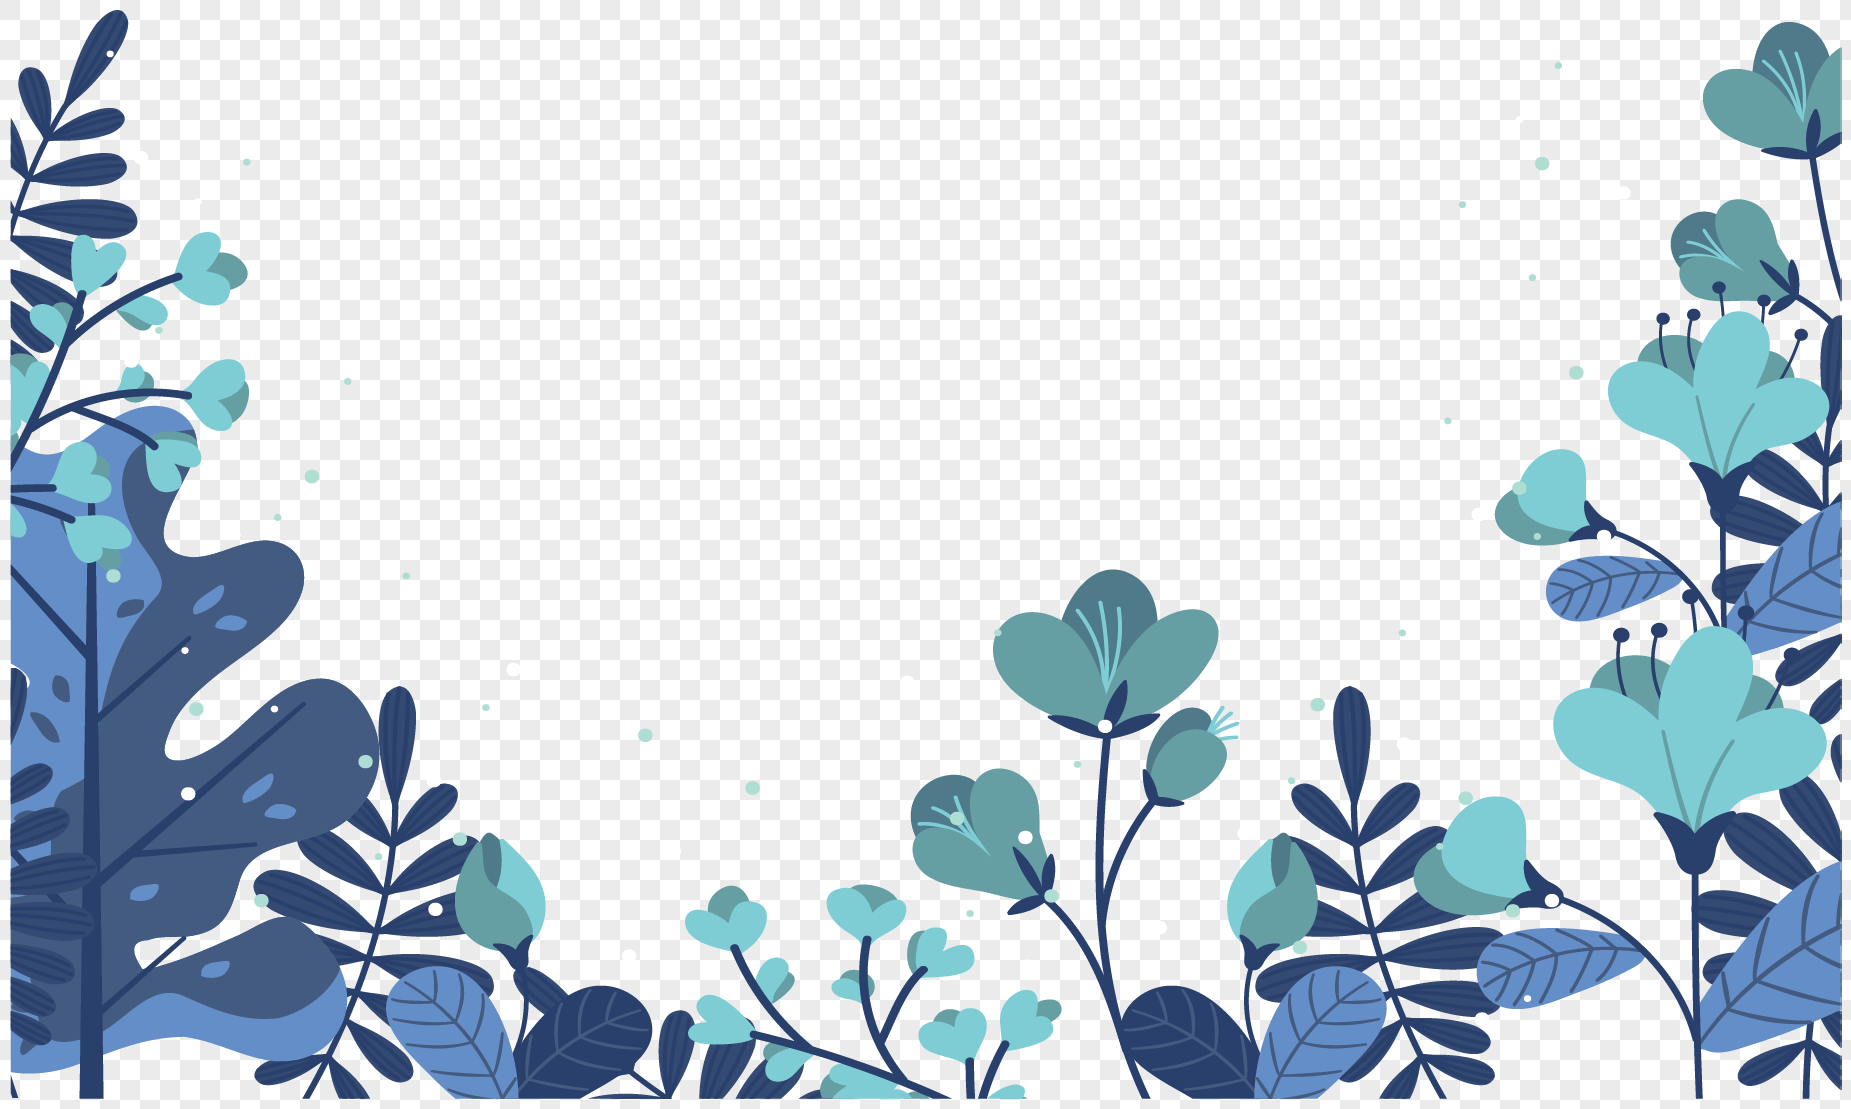 blue leaves flowers and flowers png image picture free download